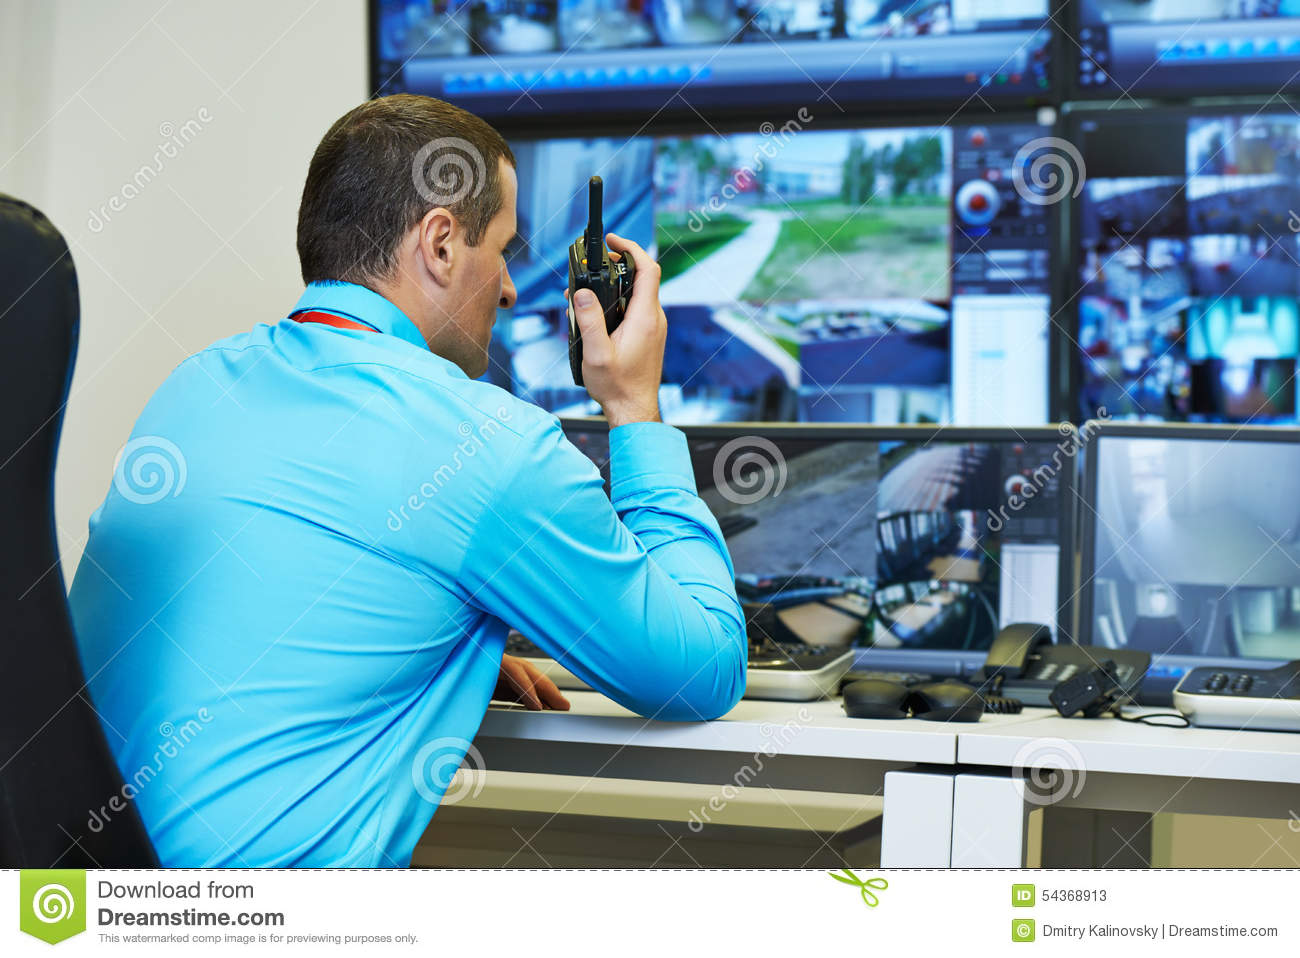 Security Video Surveillance Stock Image Image Of People